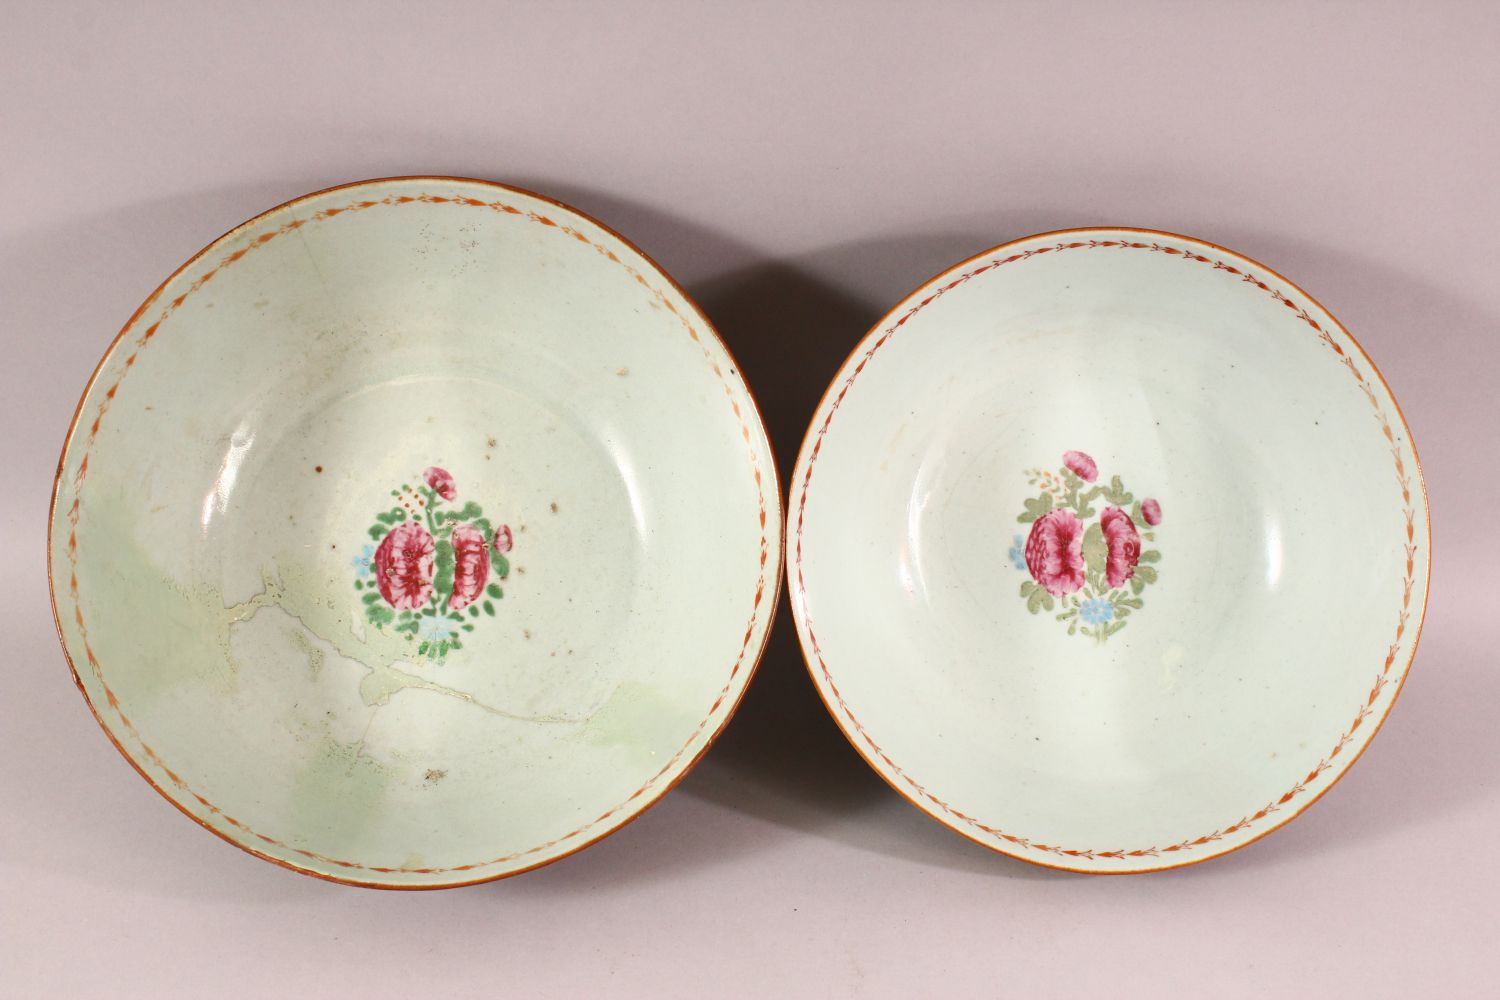 TWO 18TH / 19TH CENTURY CHINESE FAMILLE ROSE PORCELAIN BOWLS, each decorated with bands of flora, ( - Image 2 of 5